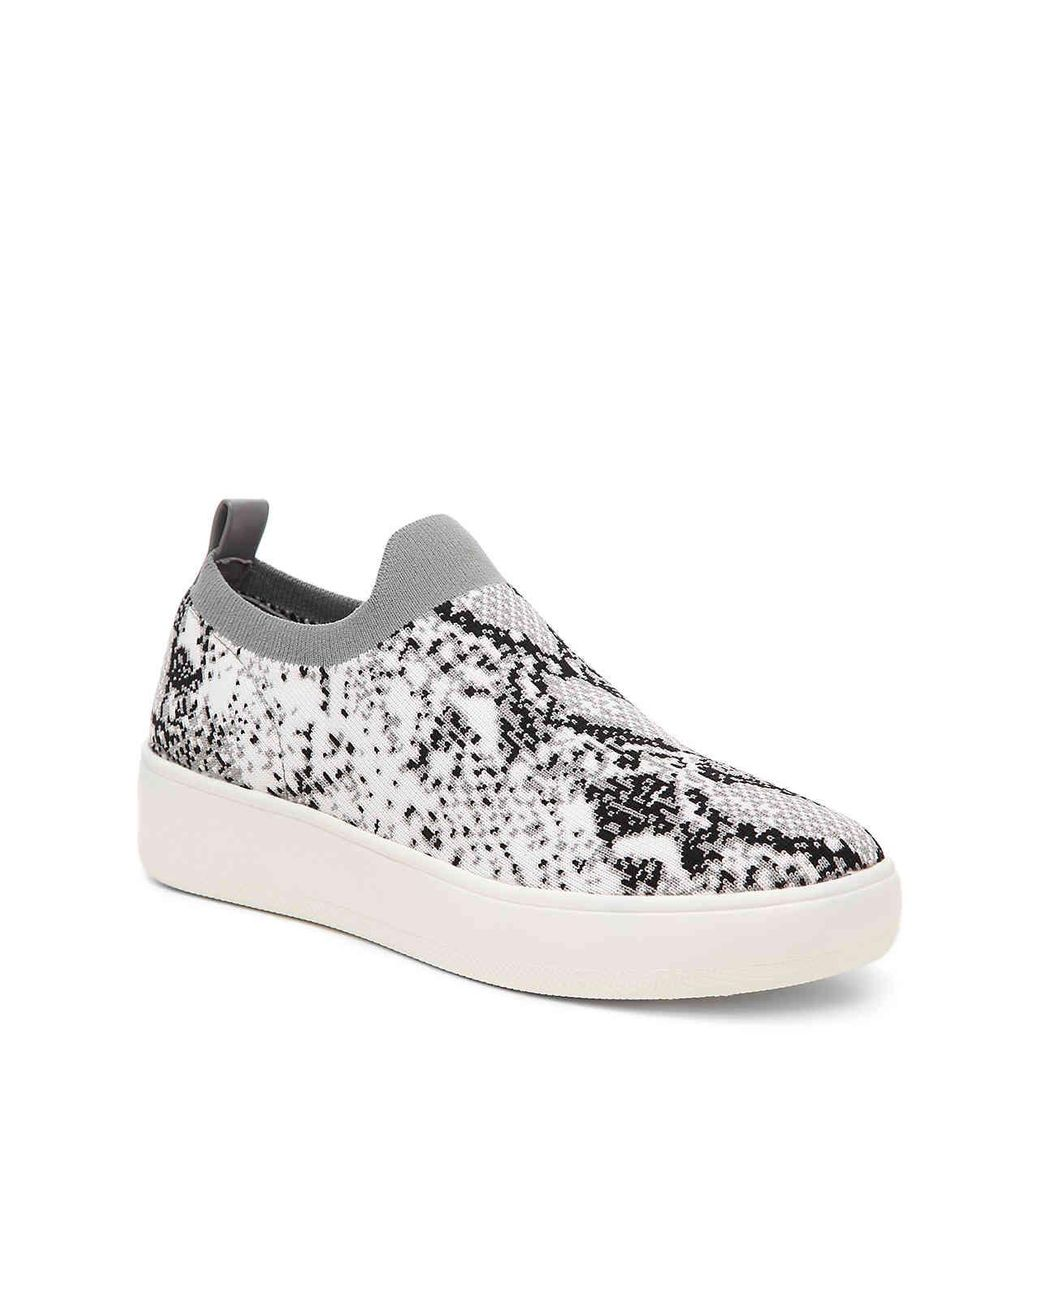 It's just an image of Lively Dsw Printable Coupon 2020